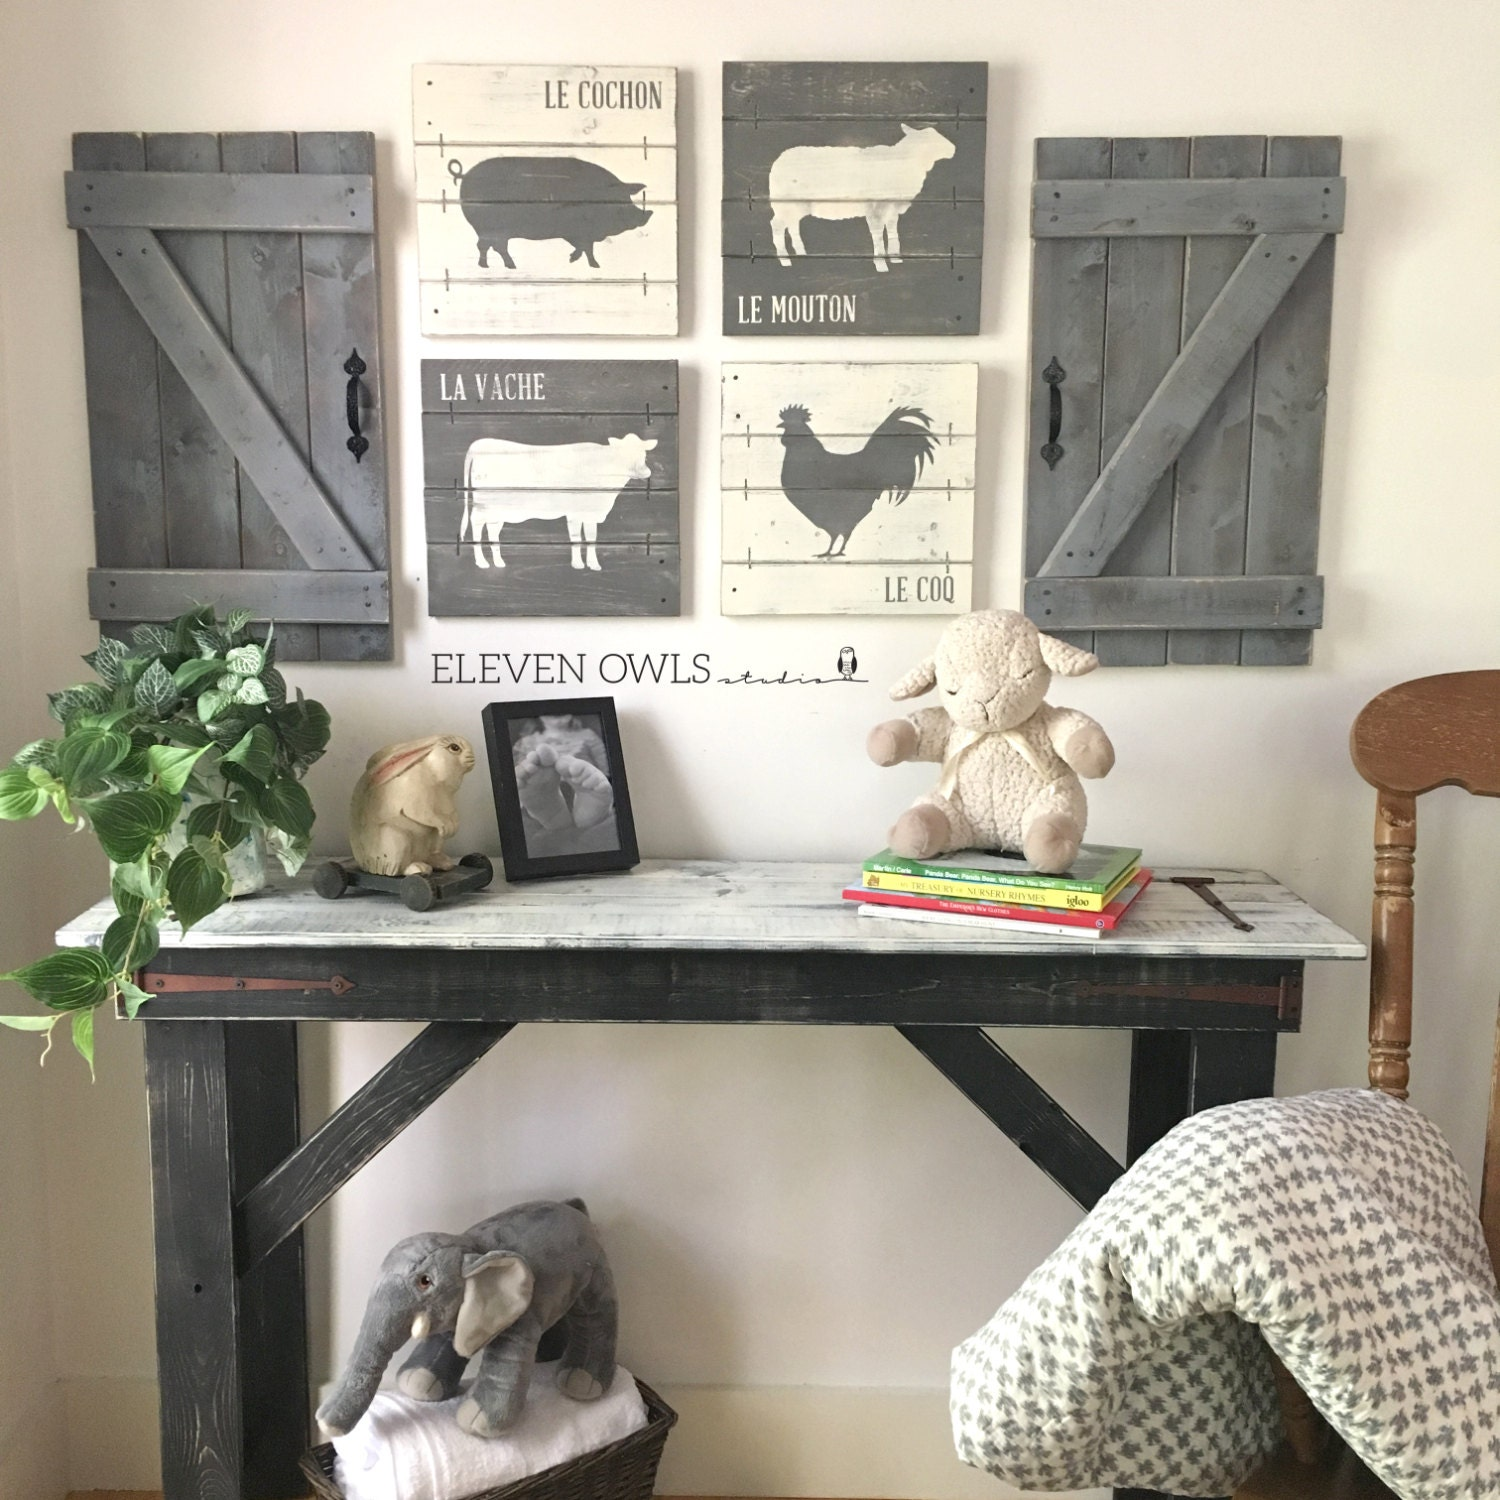 Farmhouse Nursery Decor 4 Pcs Set Rustic Nursery Sets